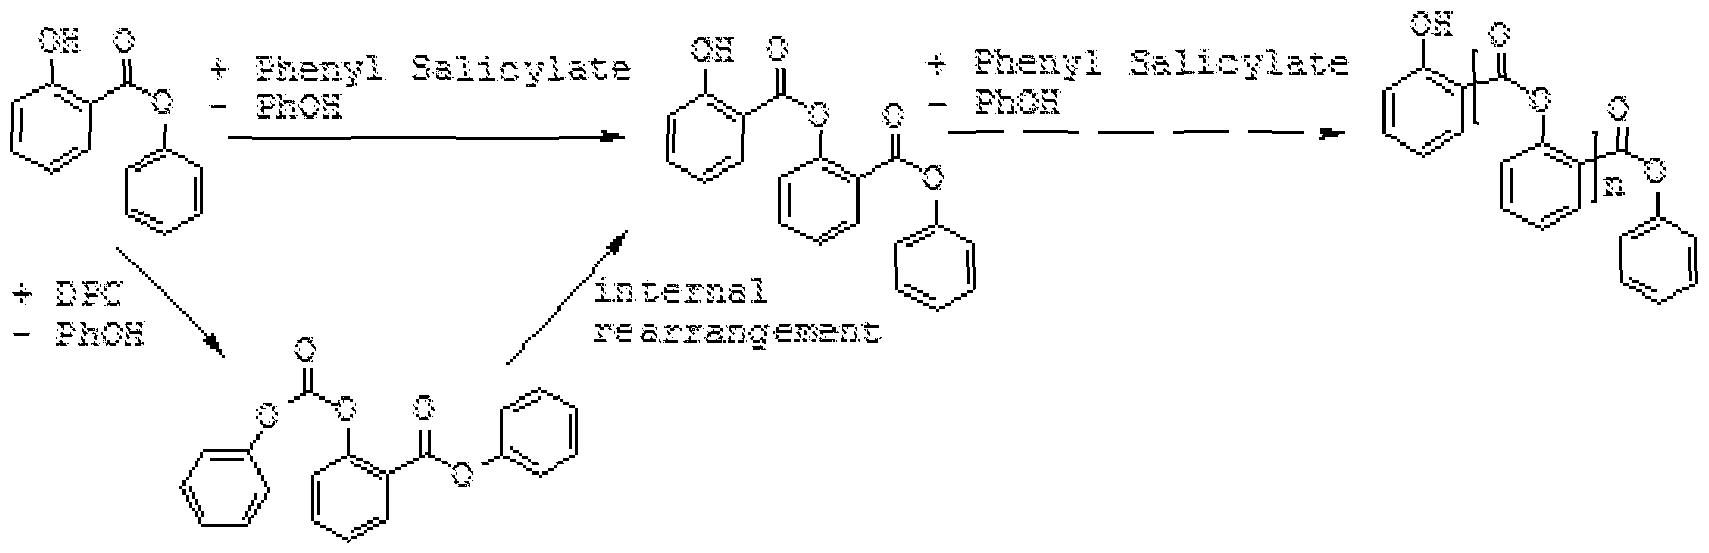 WO2011018448A1 - Process for removing an alkanol impurity from a